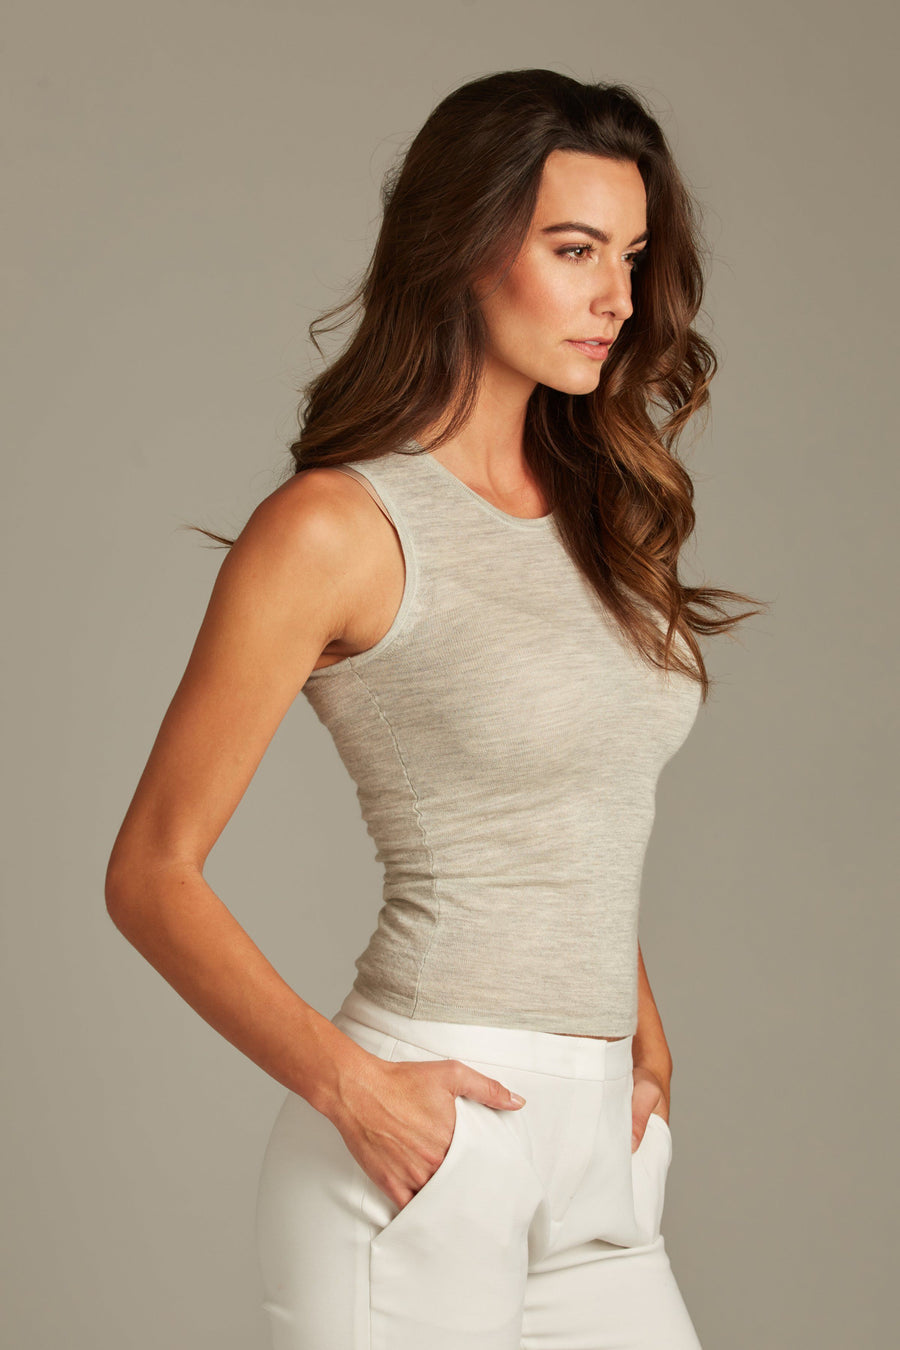 pine cashmere women's 100% pure organic cashmere high neck tank top in grey